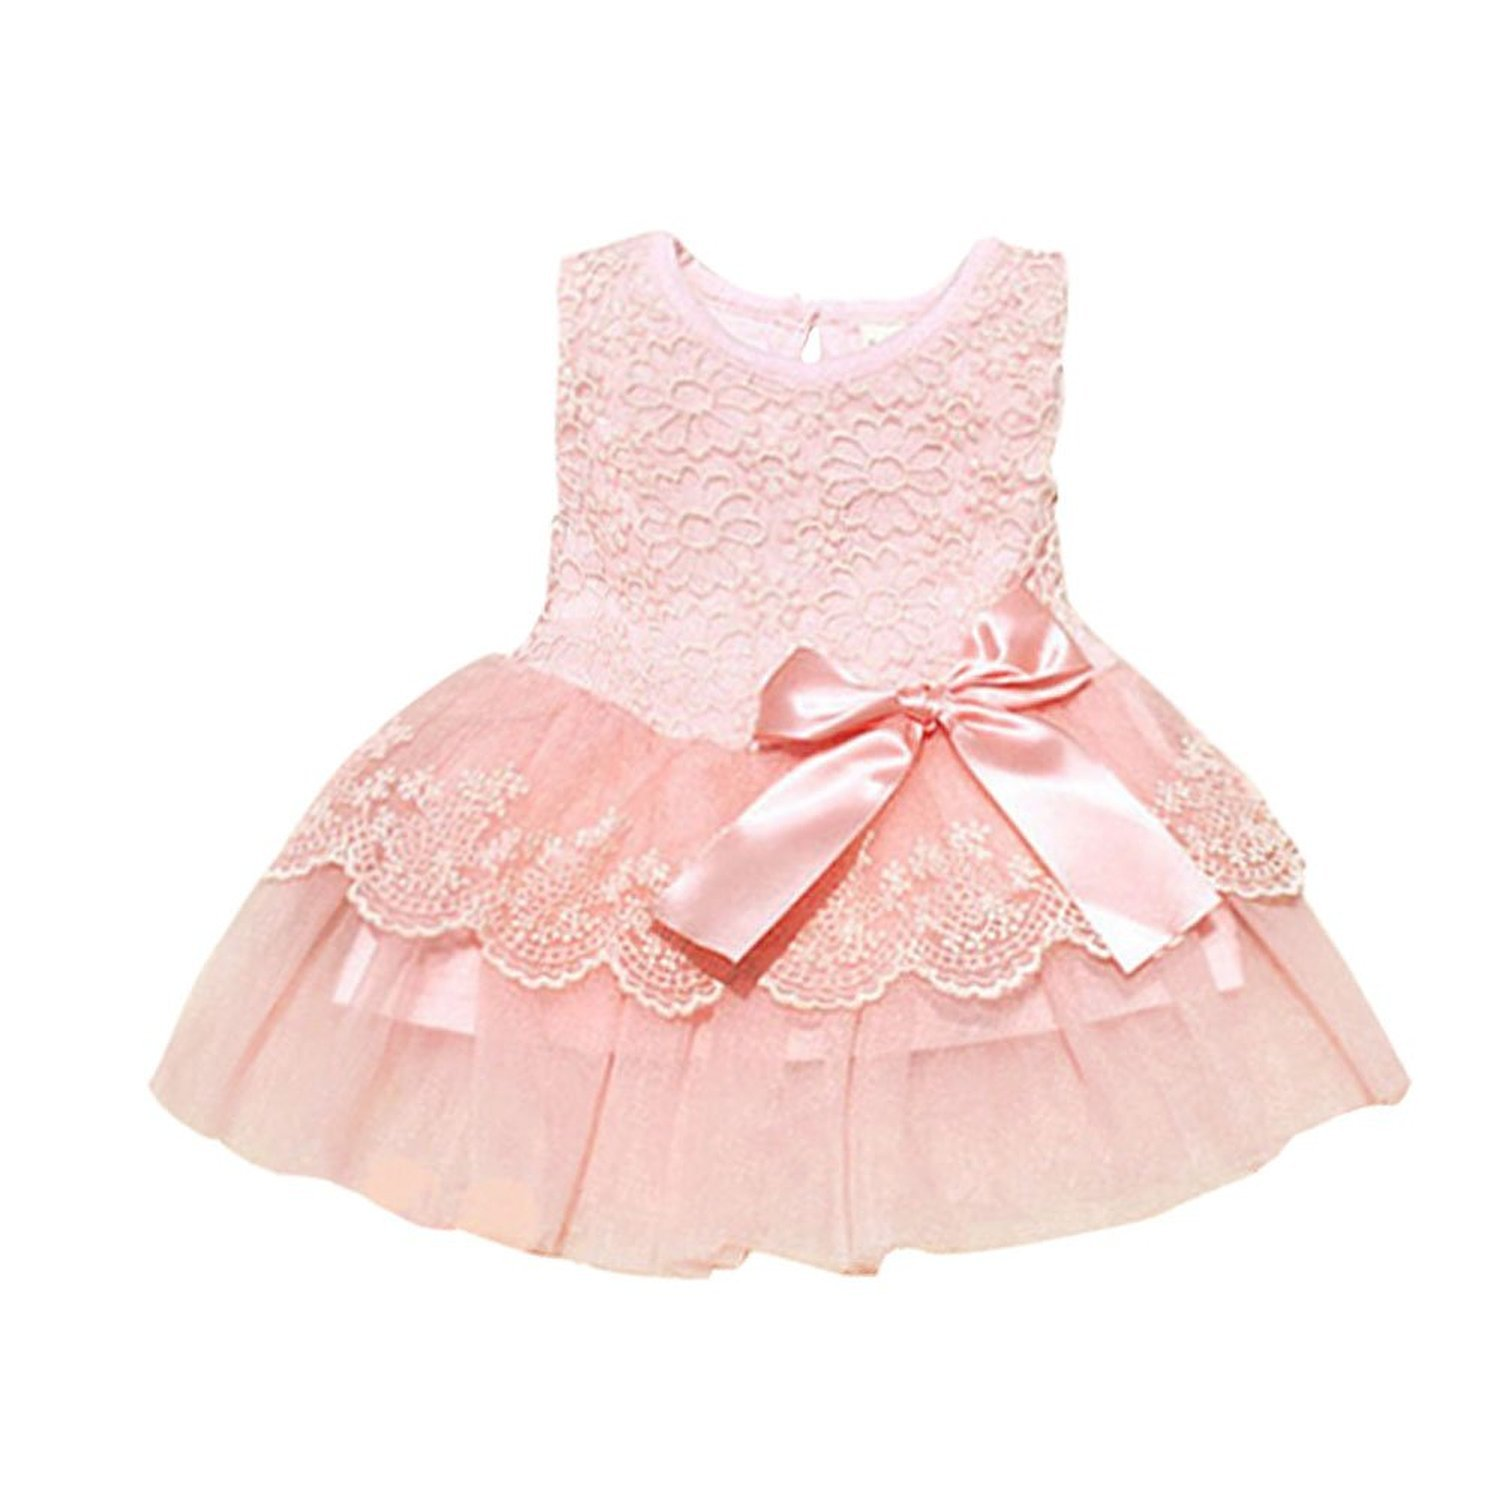 Cute Clothes Online Made In Us Fairy Season Cute Baby Girls